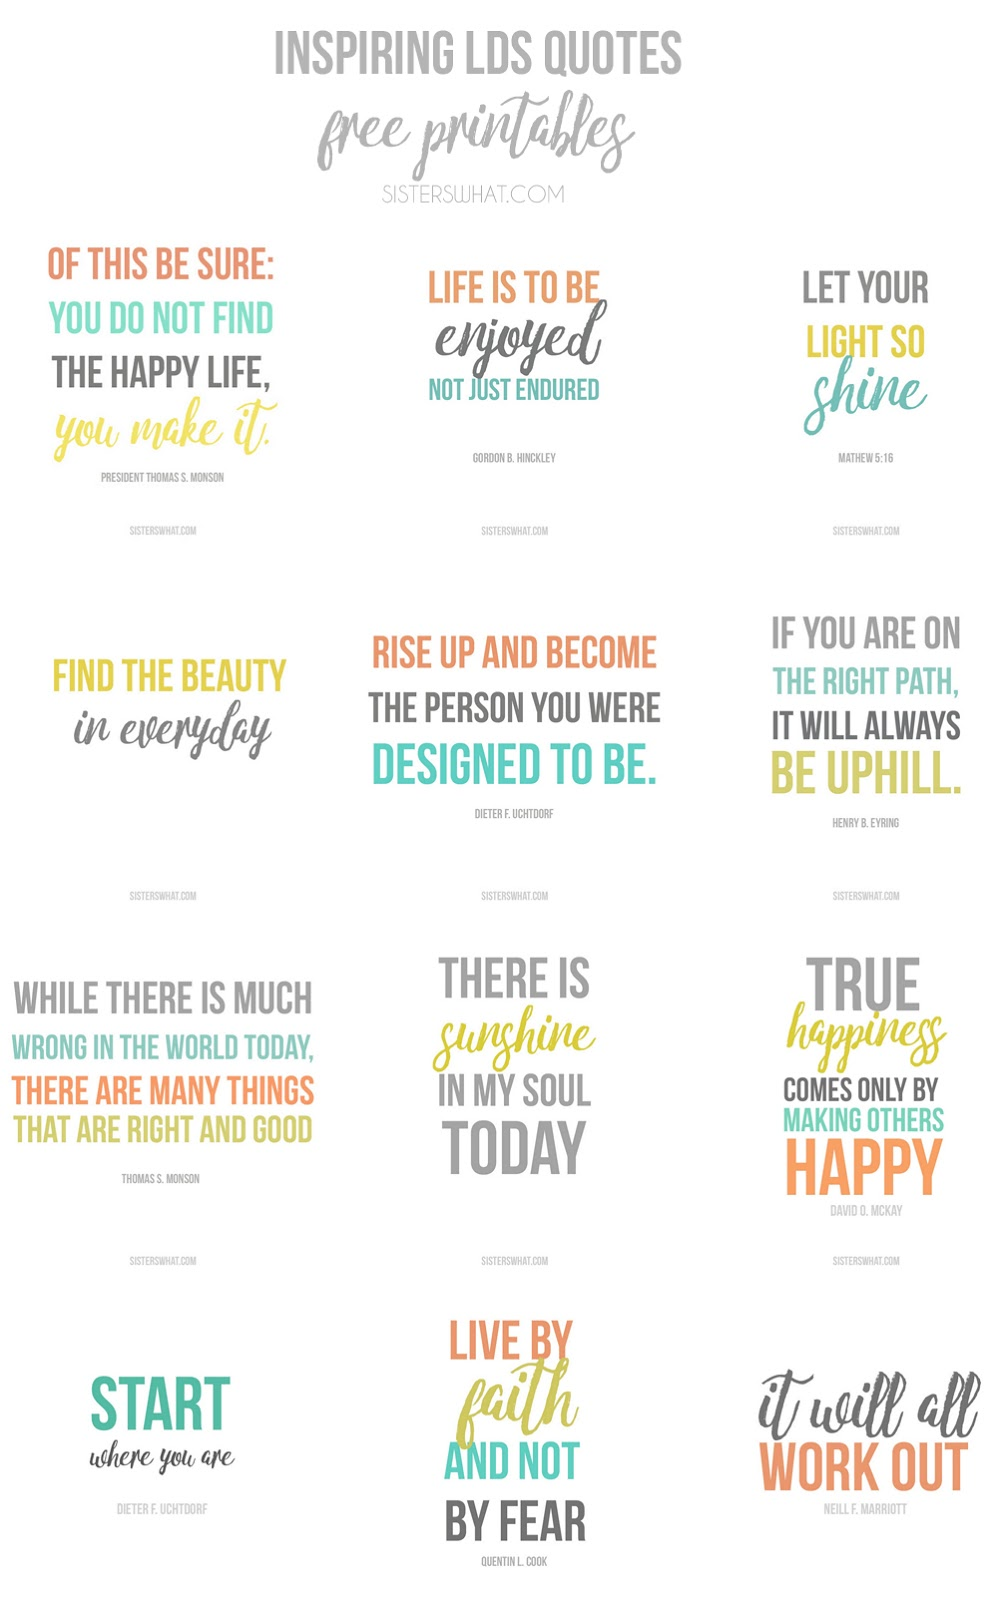 Inspirational LDS quotes free printables